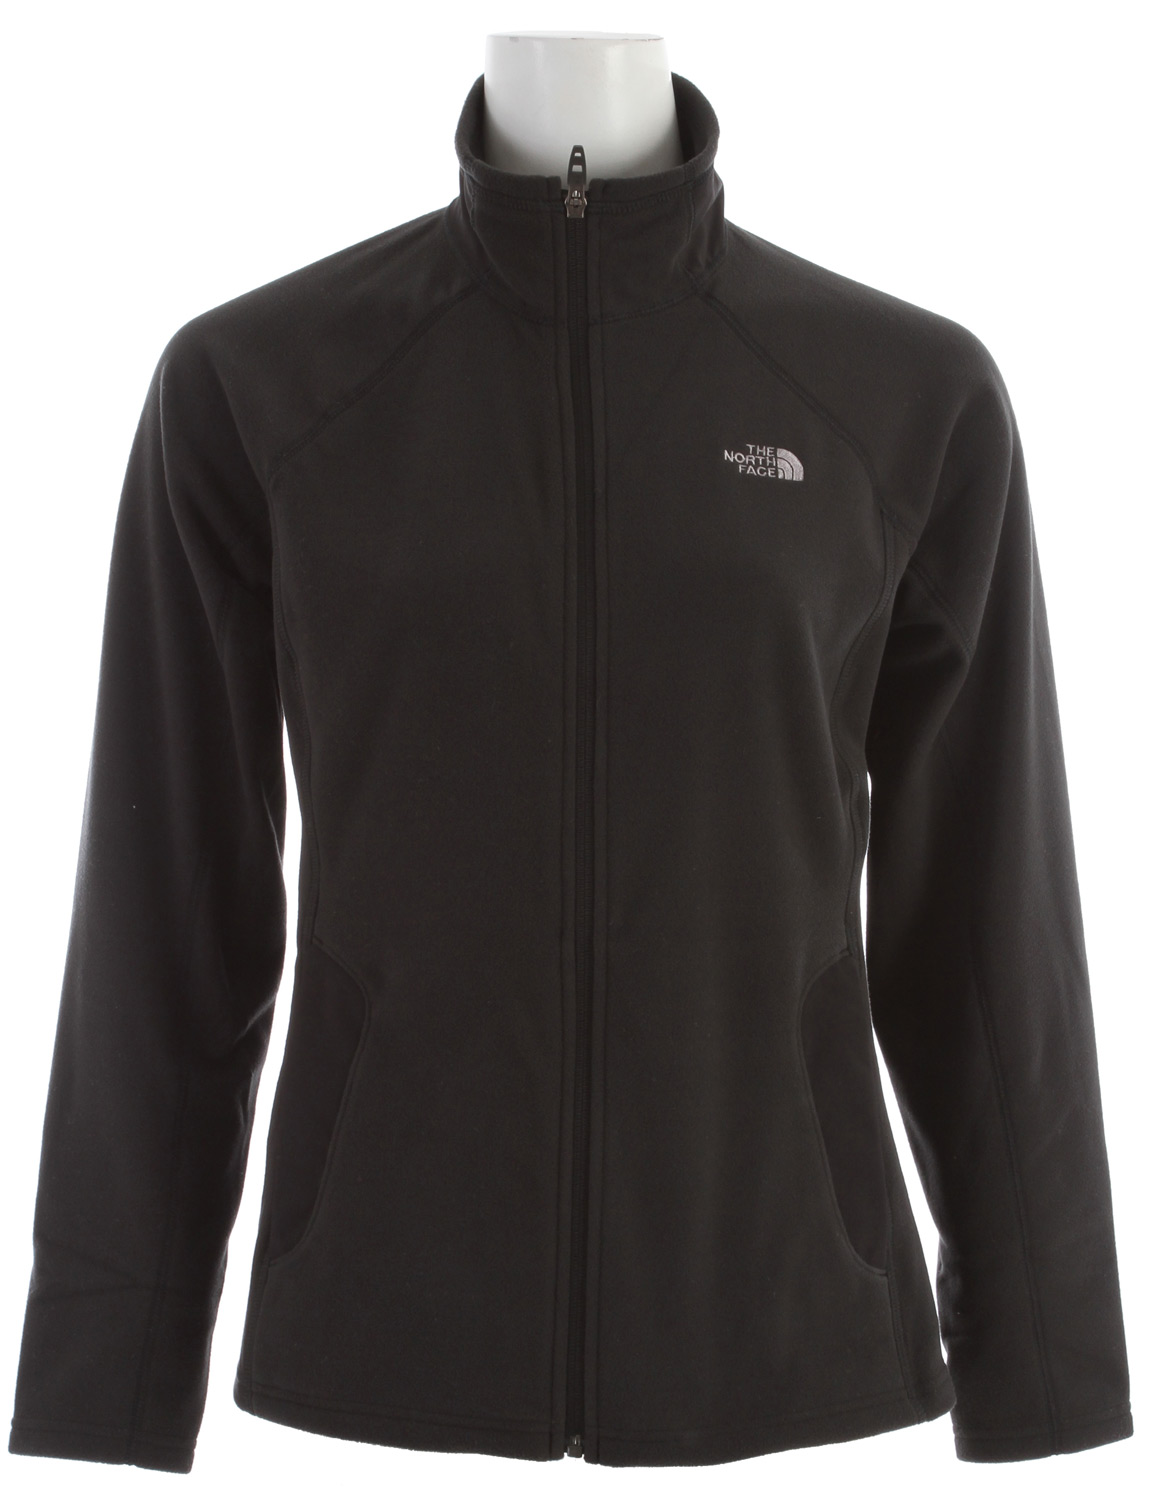 "A lightweight, quick-drying fleece with woven trim that's ideal for active adventures. Features The North Face FlashDry technology, which works with your body to improve dry time.Key Features of The North Face RDT 100 Full Zip Fleece: Fleece with FlashDry fibers for improved dry time Secure-zip bicep pocket Quarter zip for venting TNF Apex stretch woven at collar and bicep pocket for abrasion resistance Avg weight: 210g Center back: 25.75"" Fabric: 70D g/m 100% polyester with FlashDry - $74.95"